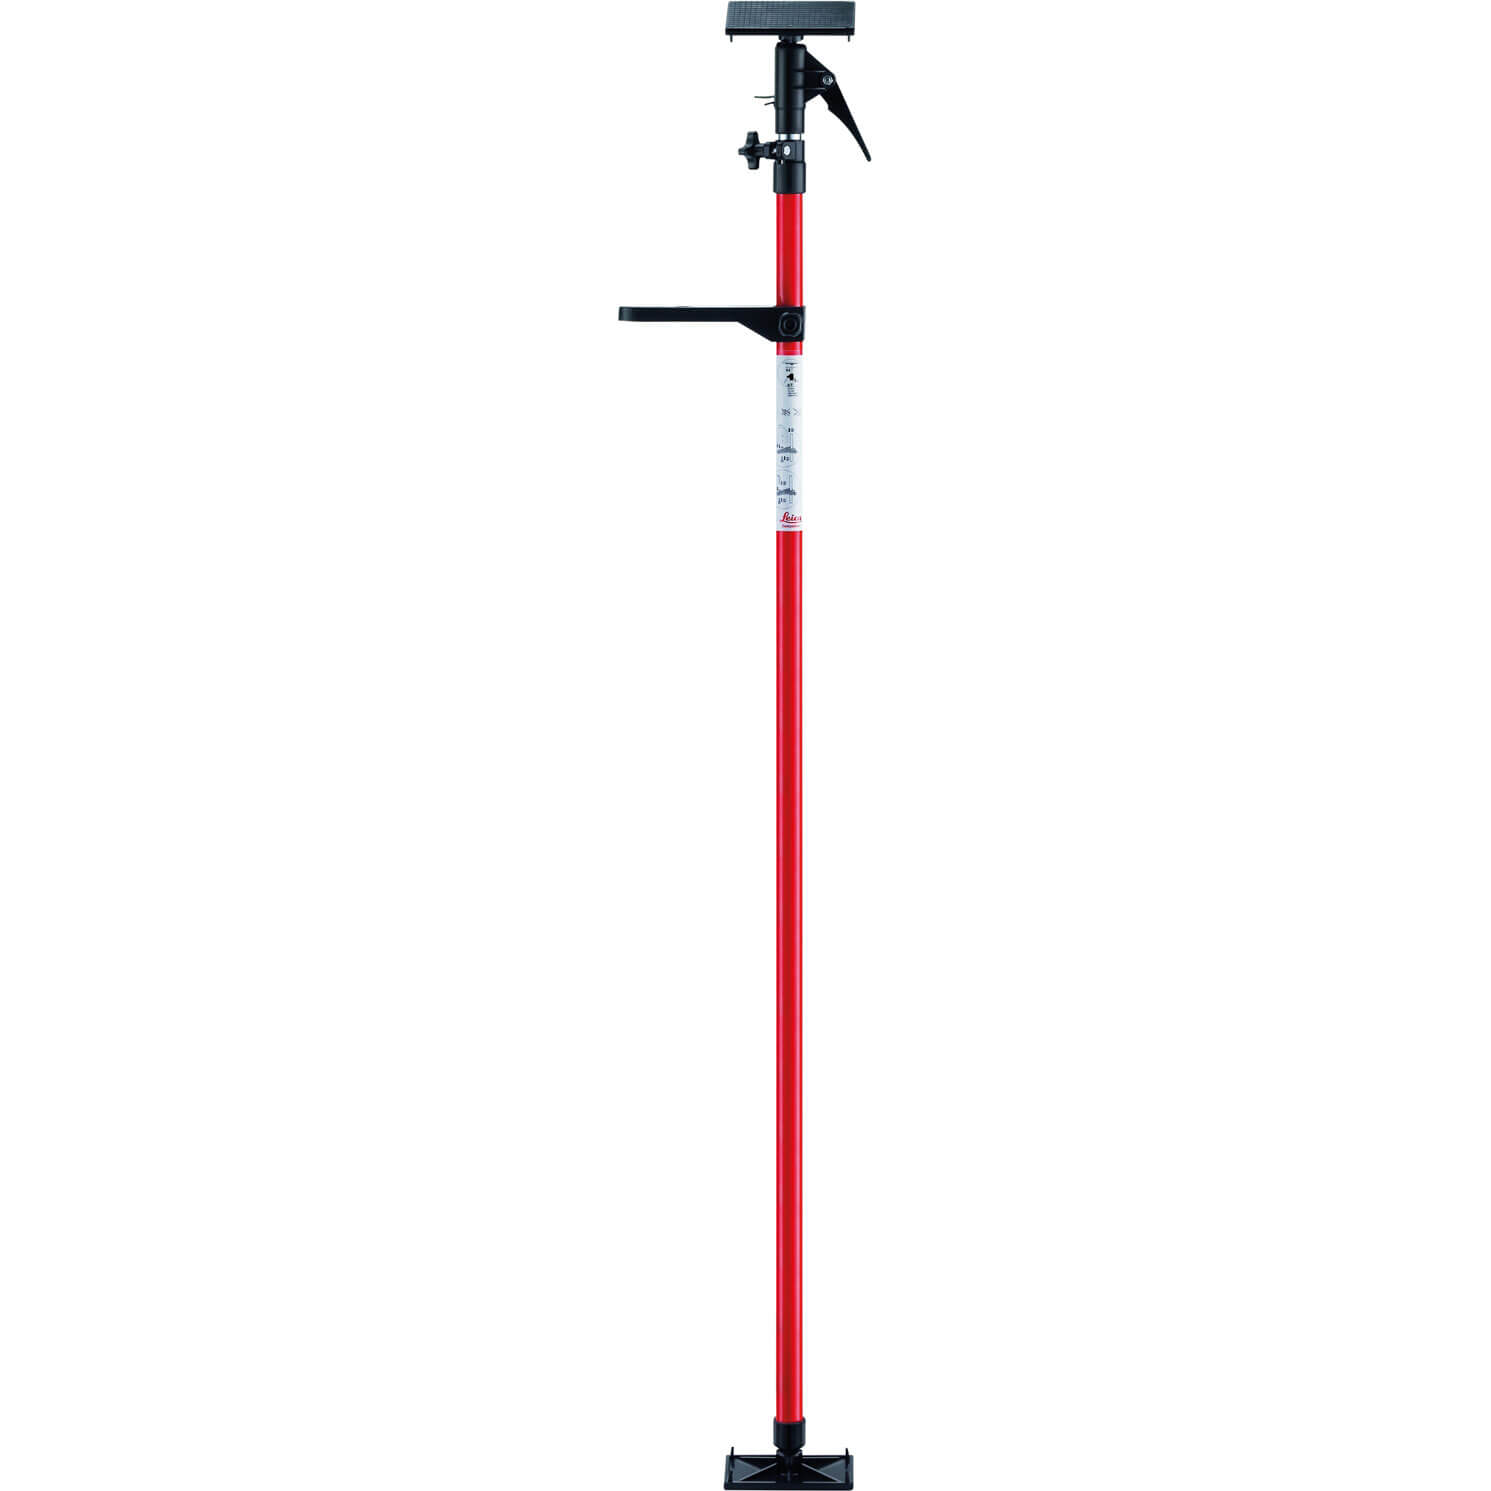 Image of Leica Geosystems CLR290 Floor To Ceiling Pole